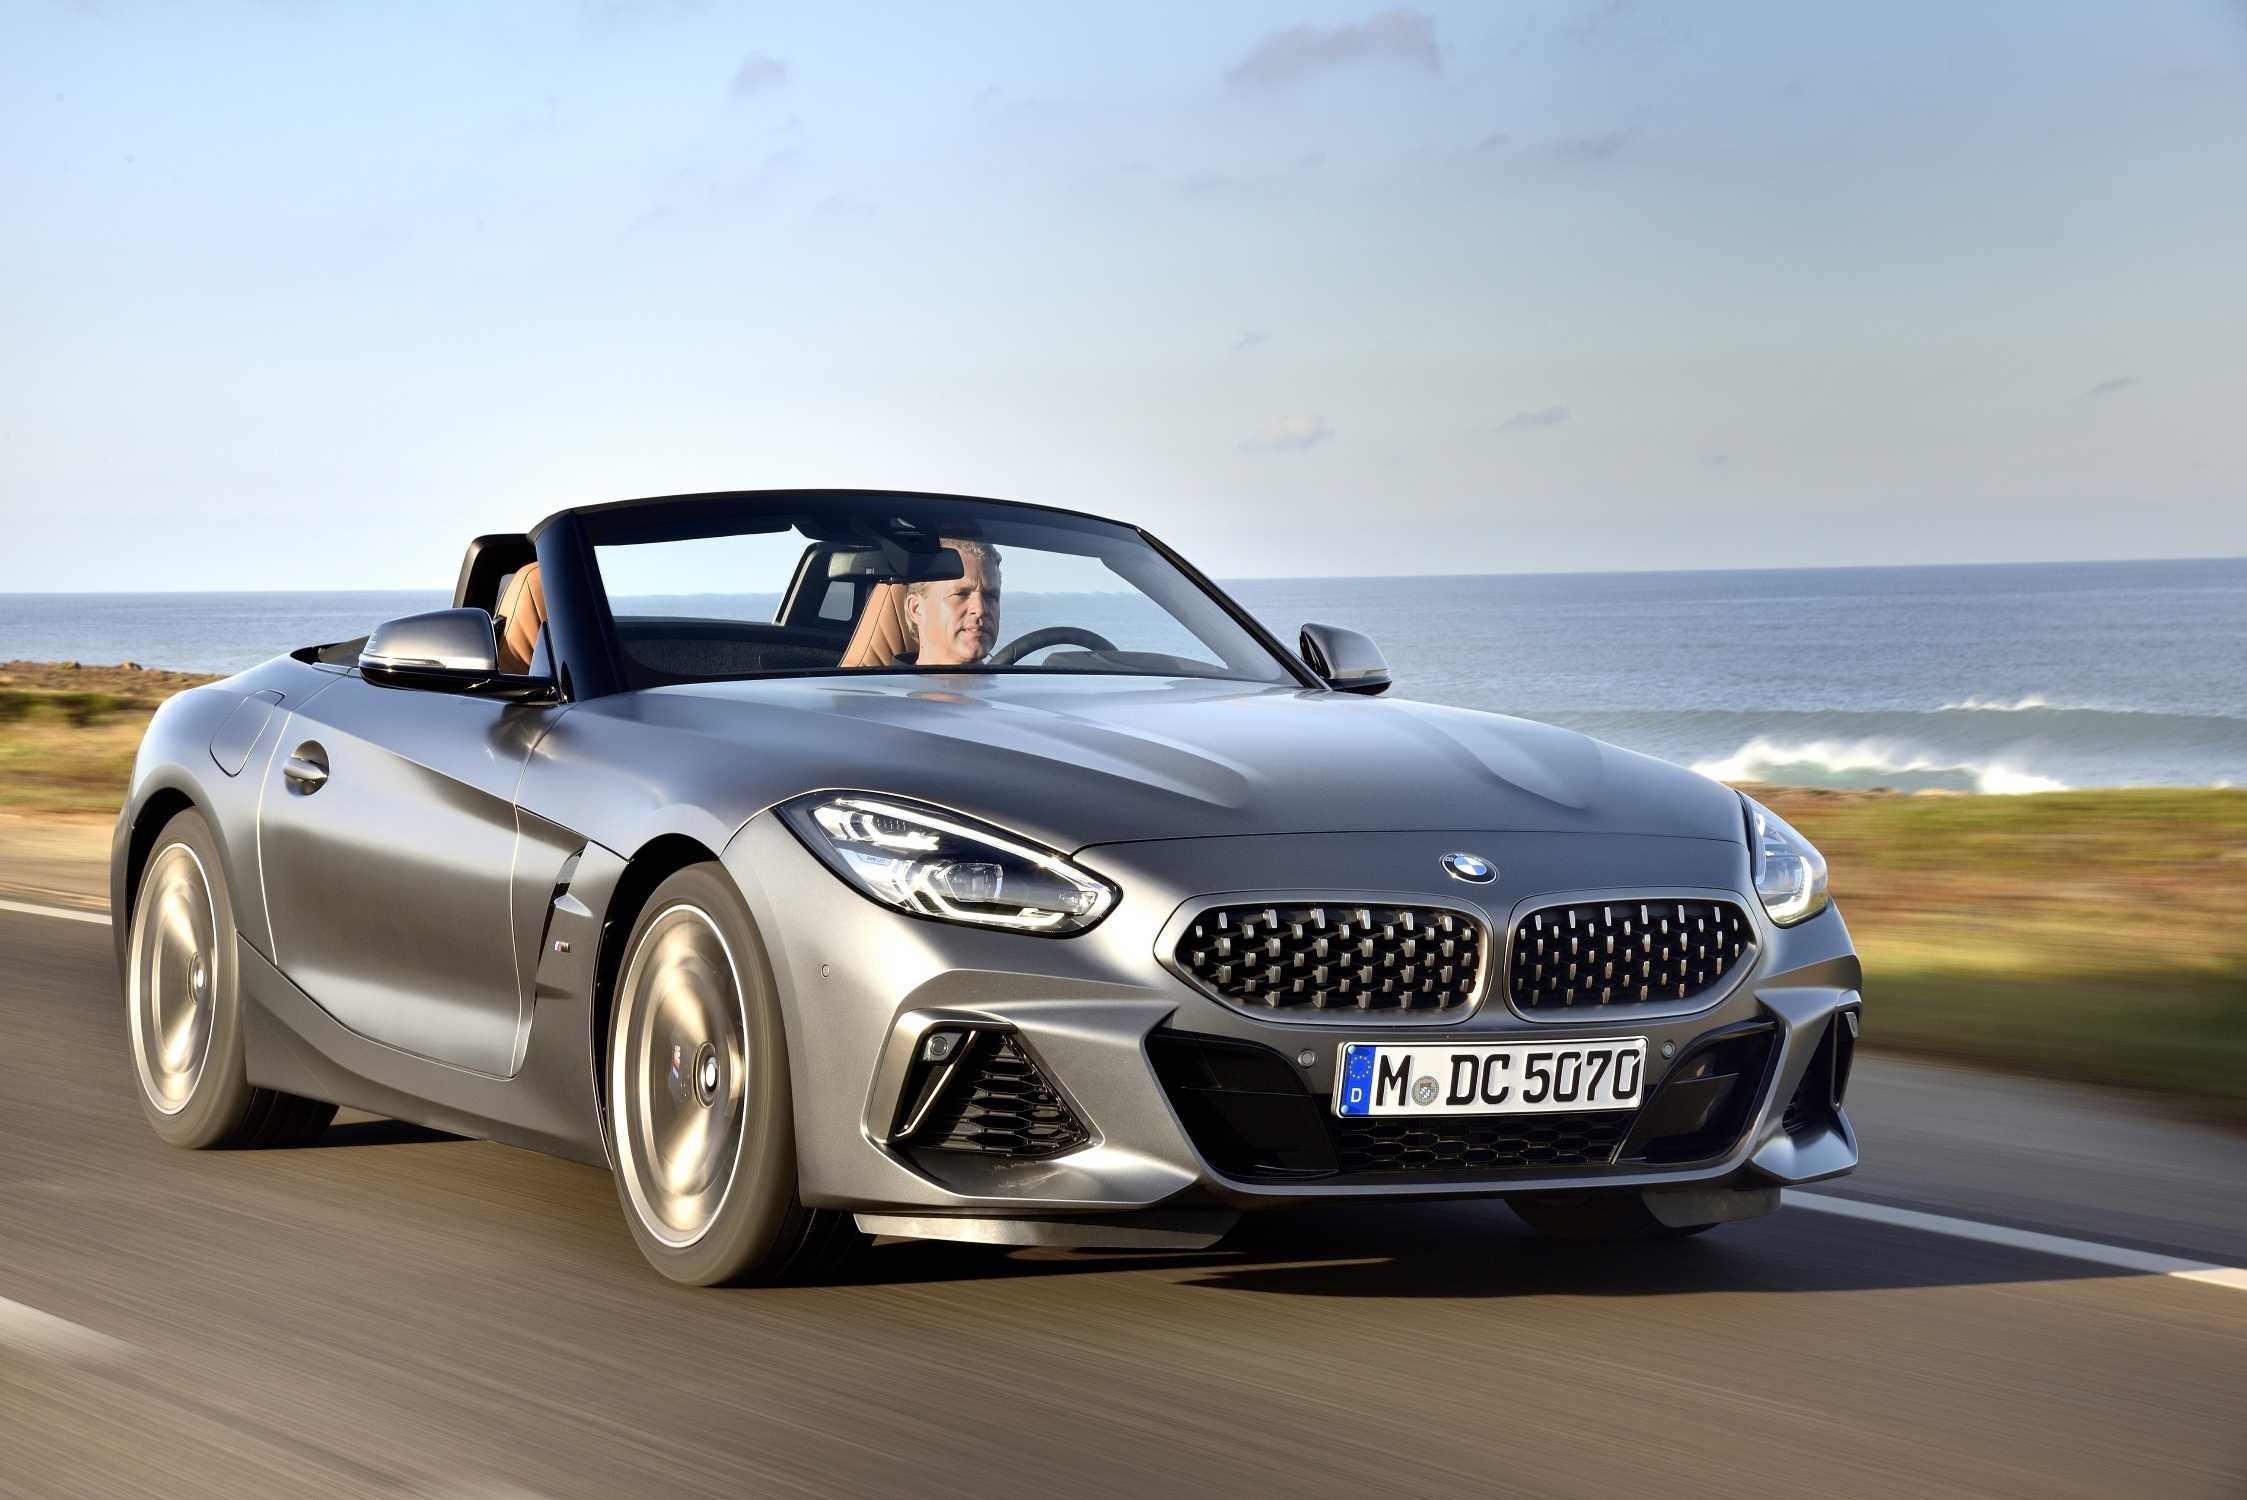 P90328297-the-new-bmw-z4-m40i-roadster-in-color-frozen-grey-ii-metallic-and-19-m-light-alloy-wheels-double-spo-2247px